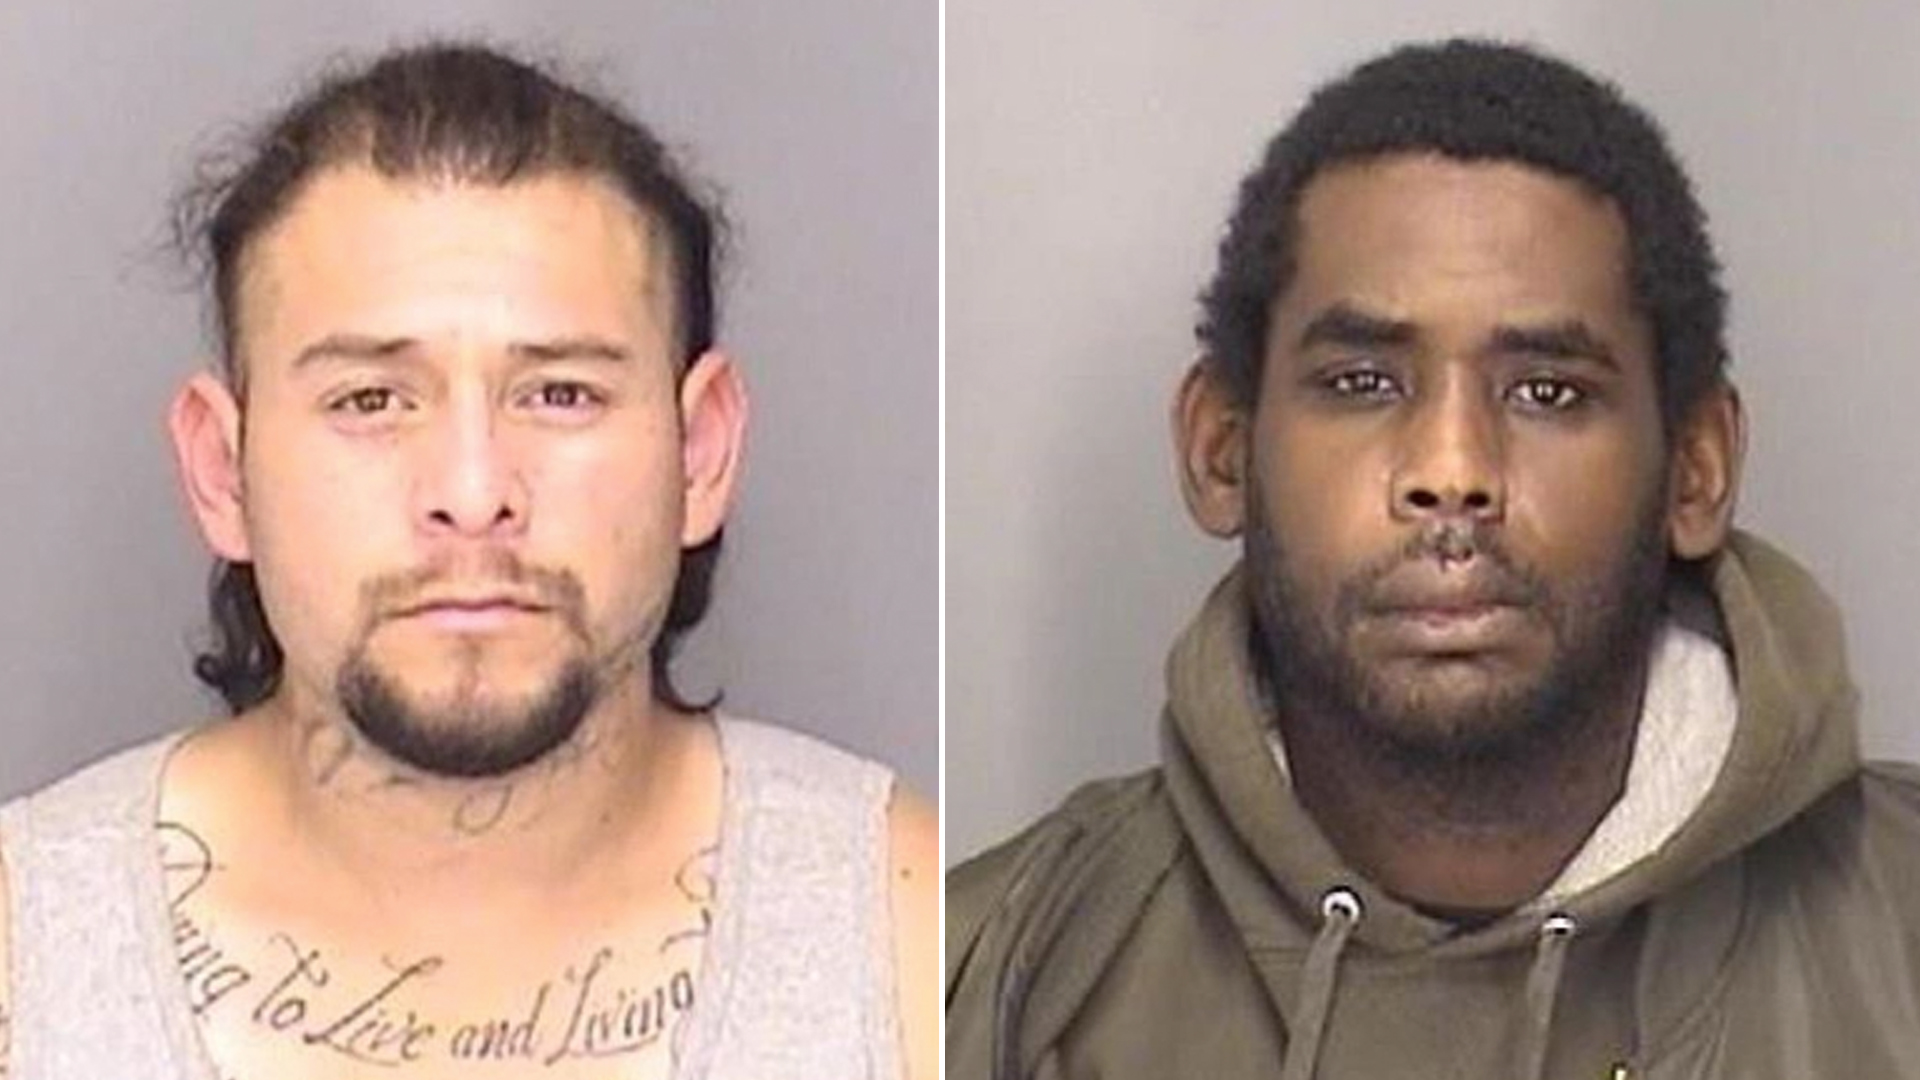 Javier Delgadillo-Munoz and Paul Glenn, both of Modesto,are seen in undated booking photos provided by the Merced County Sheriff's Office.